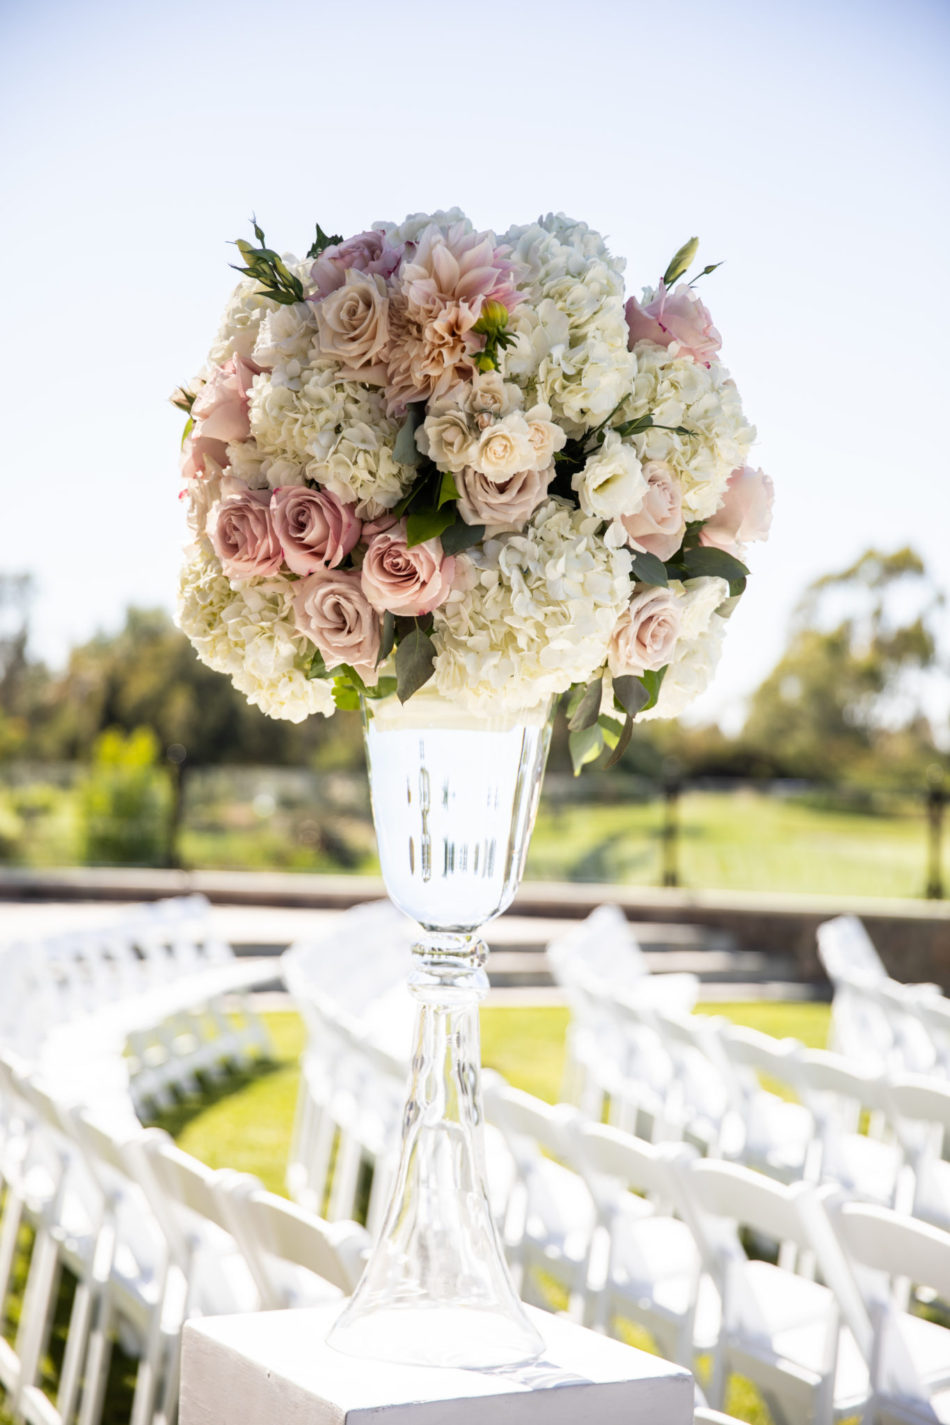 elevated floral arrangement, ceremony floral arrangement, blush floral design, florist, wedding florist, wedding flowers, orange county weddings, orange county wedding florist, orange county florist, orange county floral design, flowers by cina